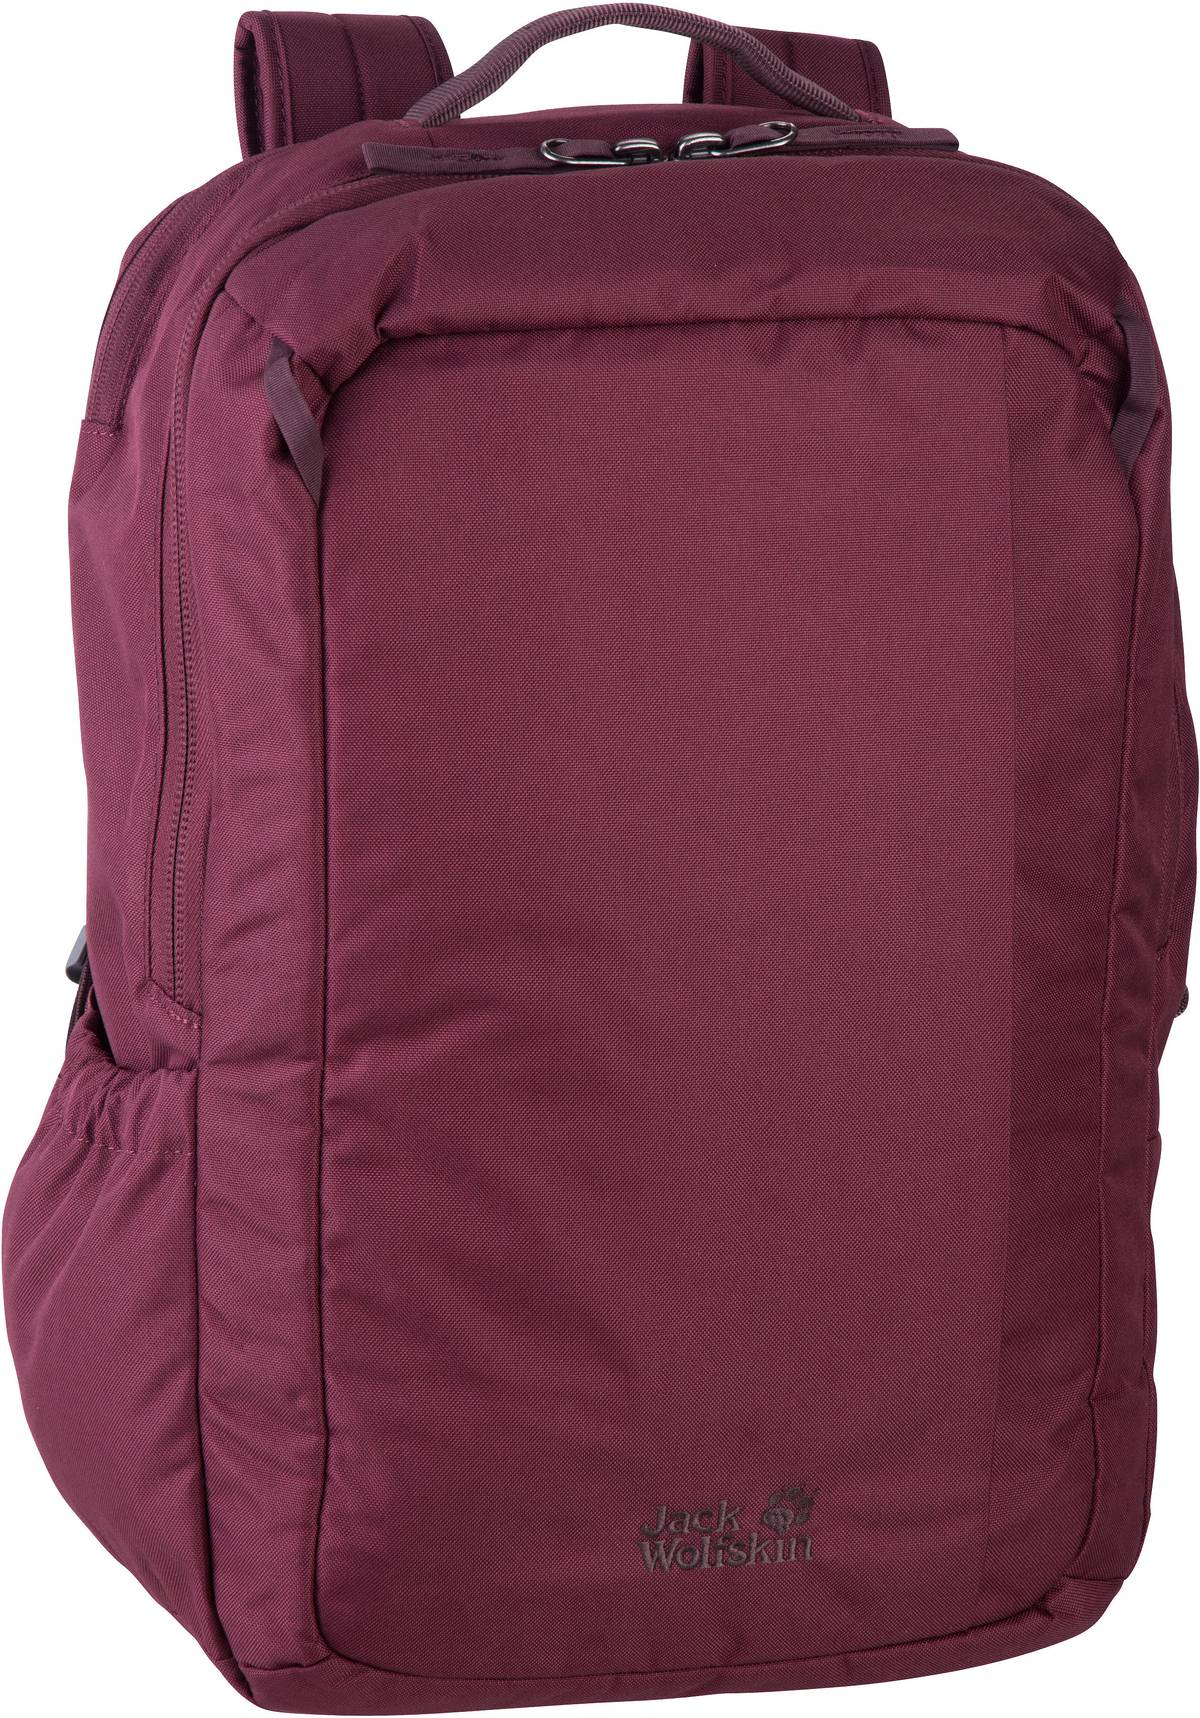 Rucksack / Daypack Brooklyn 26 Port Wine (26 Liter)